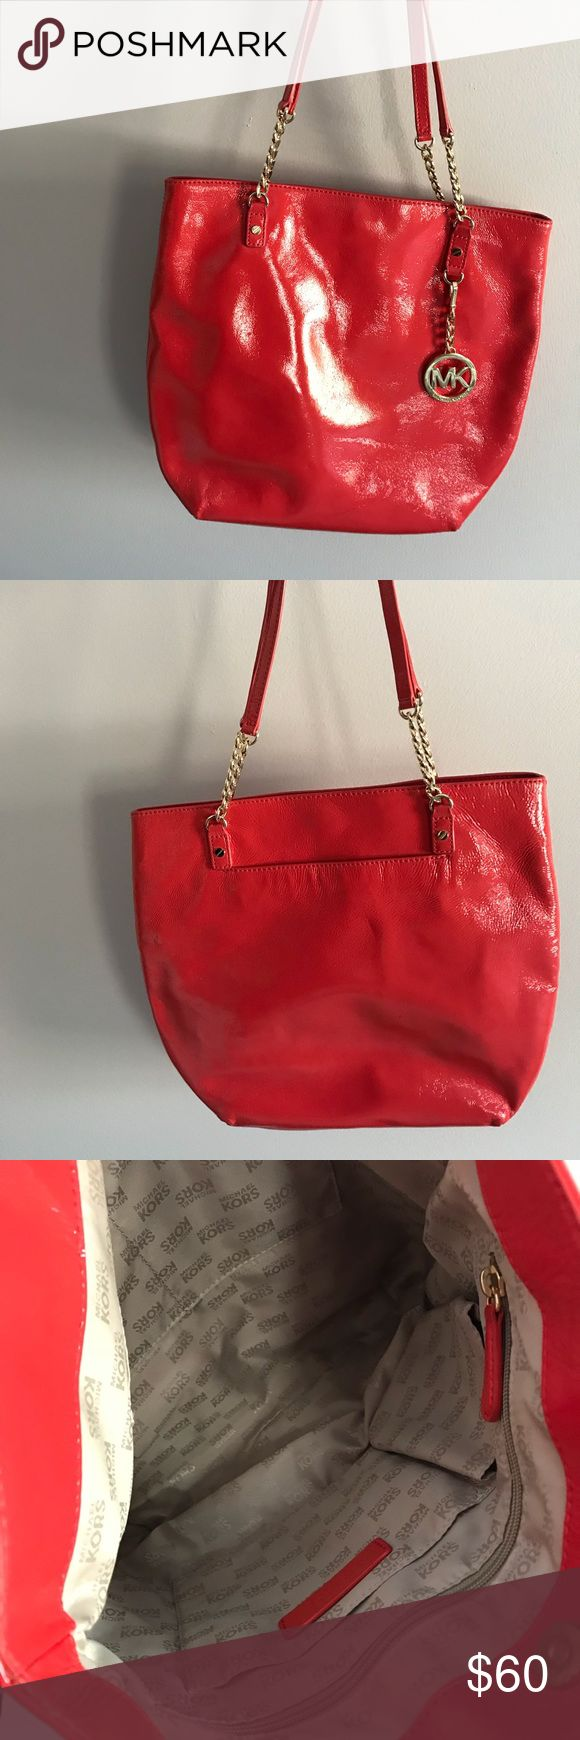 Authentic Michael Kors chain link shoulder bag Great pop of color to any outfit! Perfect for summer - orange shoulder bag. Michael Kors Bags Shoulder Bags